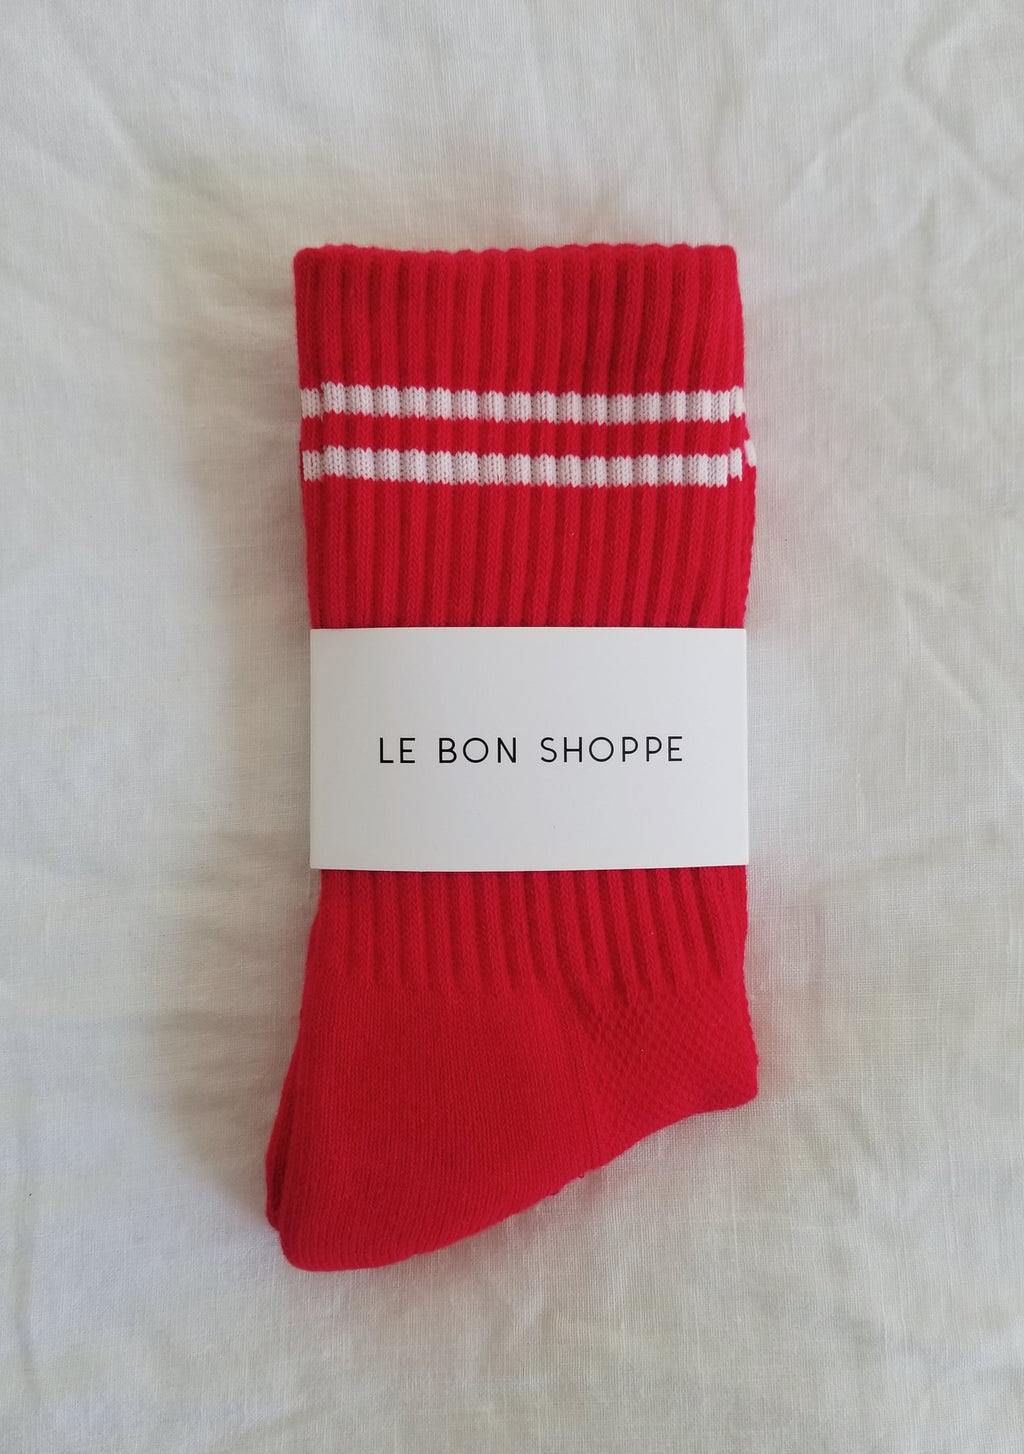 Le Bon Shoppe - Boyfriend Socks (Red)